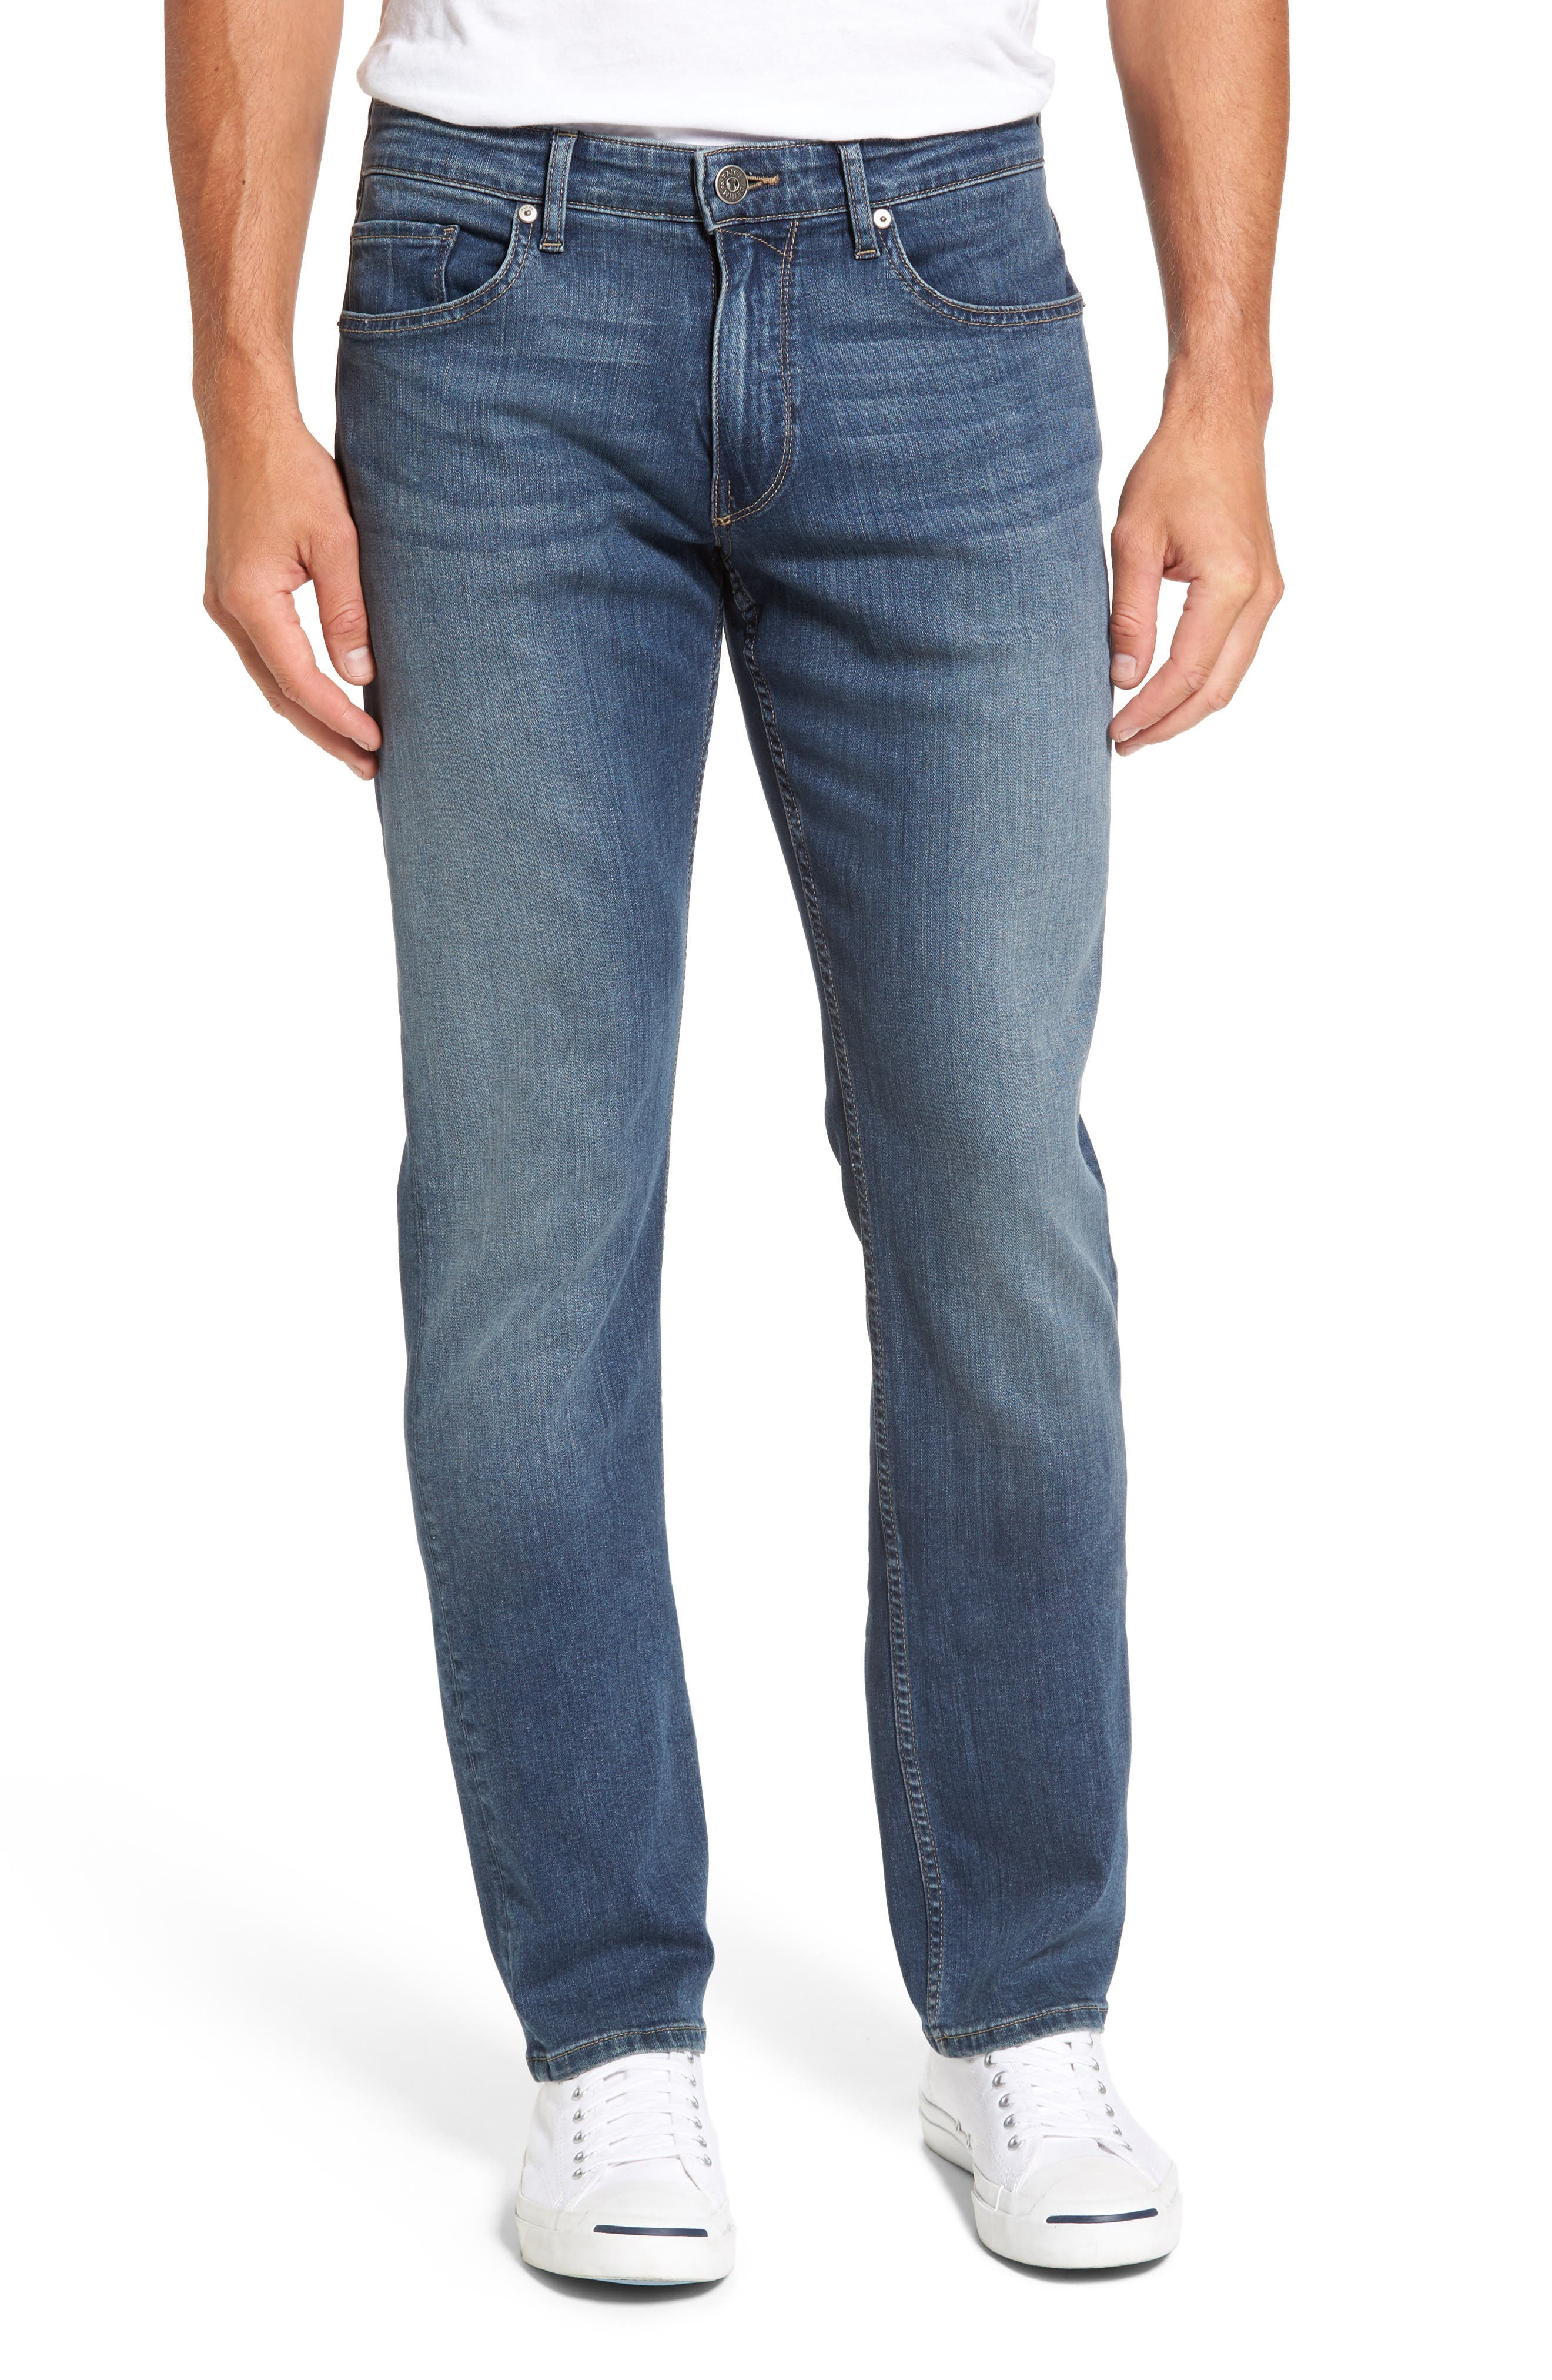 Normandie Straight Fit Jeans,                             Main thumbnail 1, color,                             ALMONT